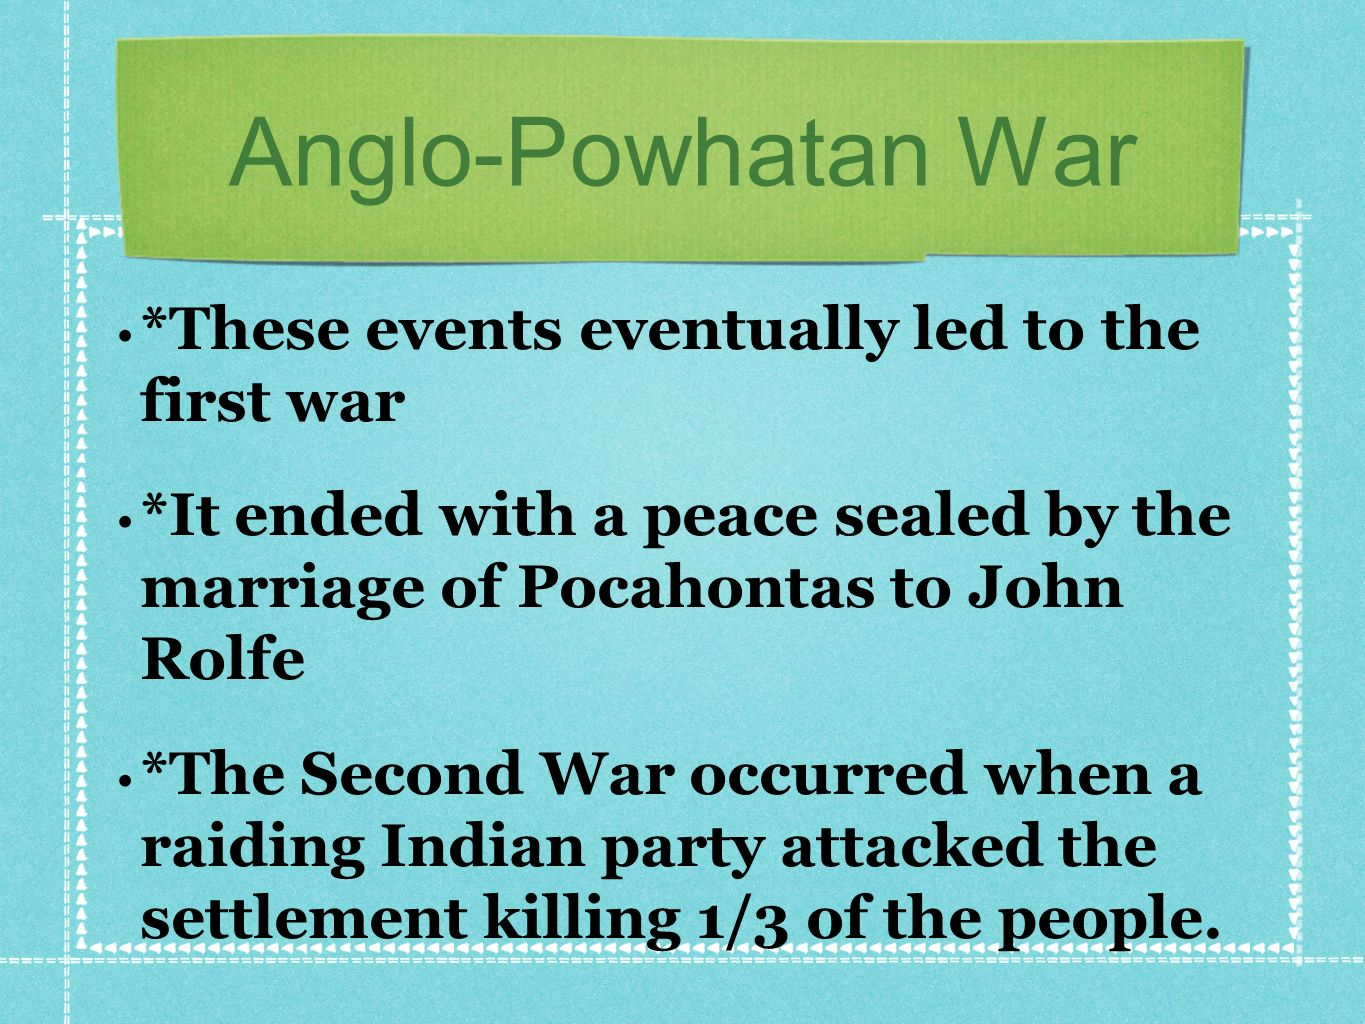 Anglo-Powhatan War *These events eventually led to the first war *It ended with a peace sealed by the marriage of Pocahontas to John Rolfe *The Second